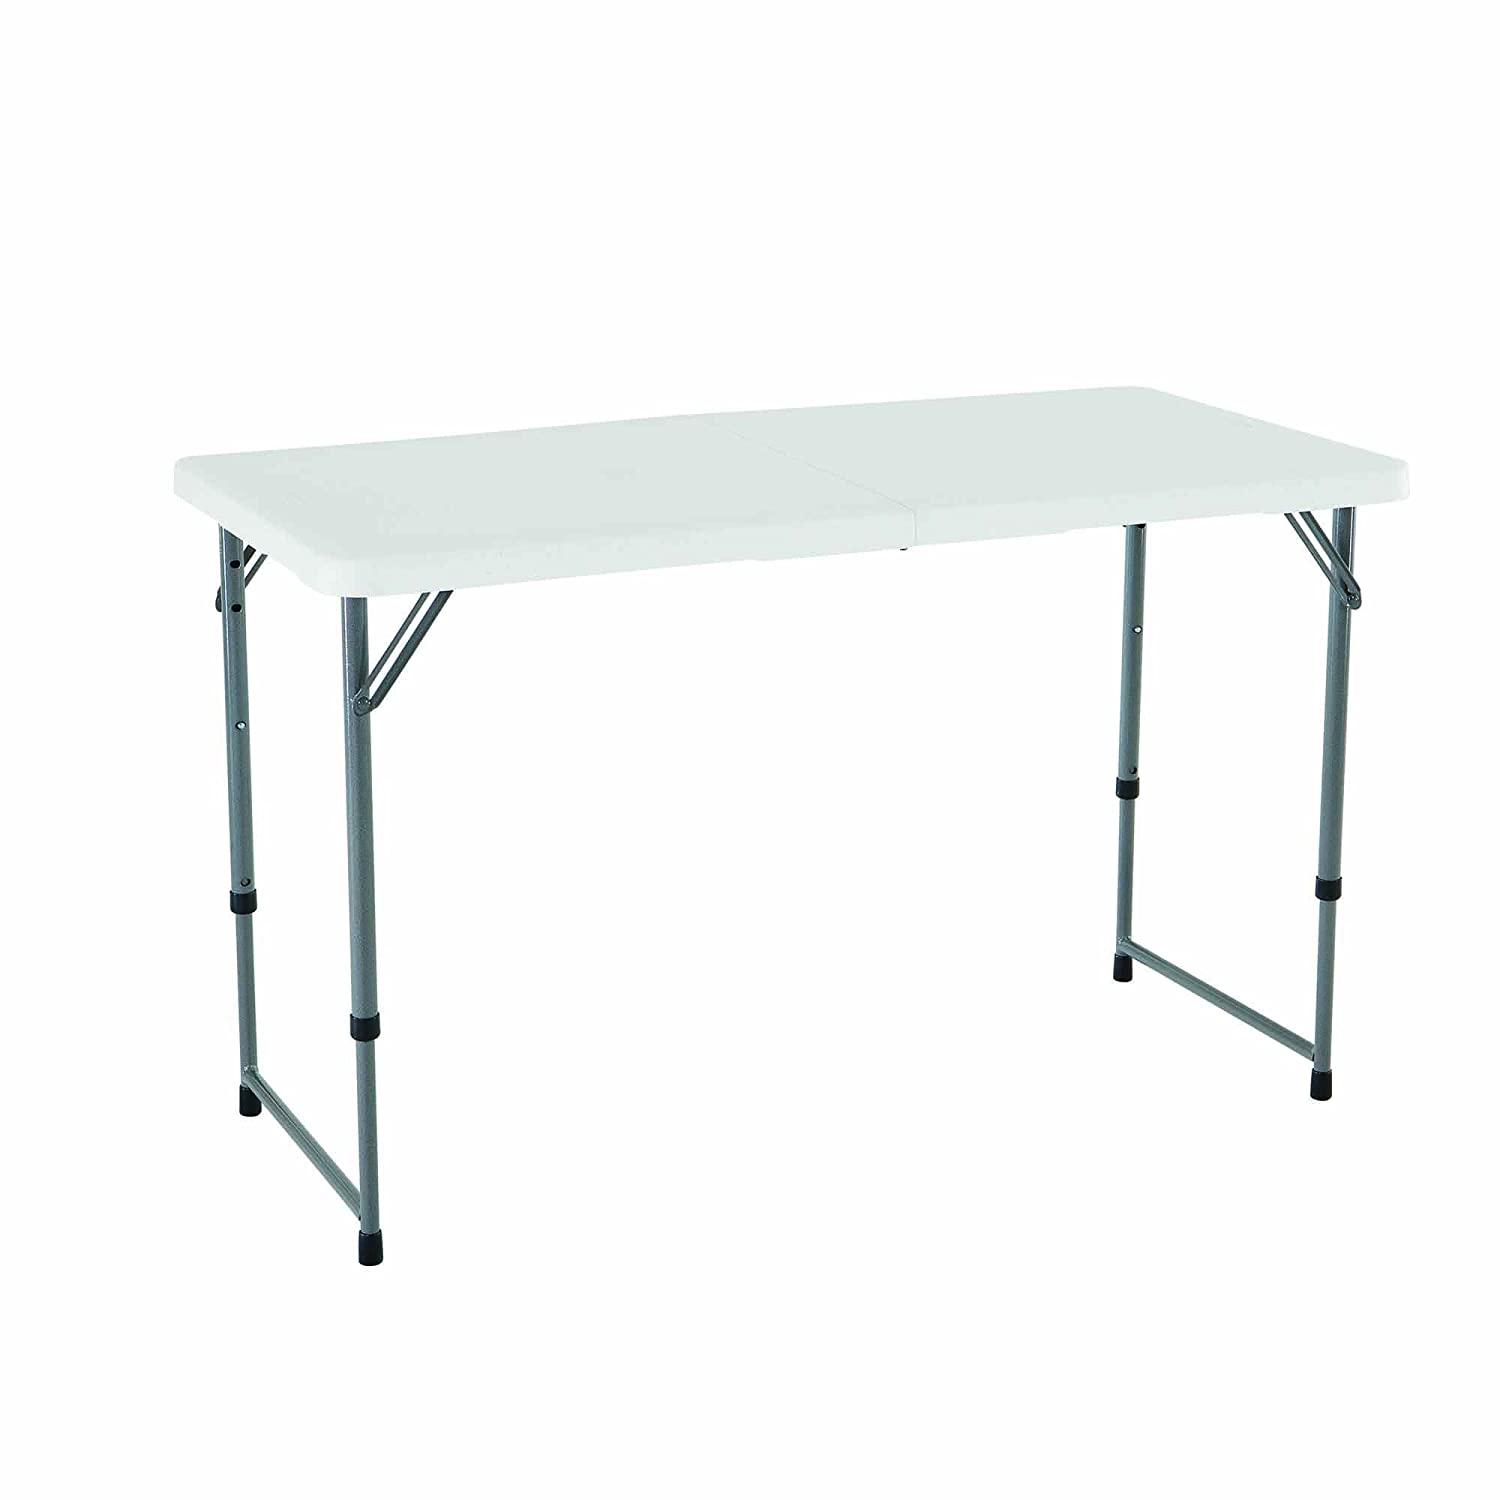 Lifetime 4428 Height Adjustble Utility Adjustable Folding Table, 4 ft White